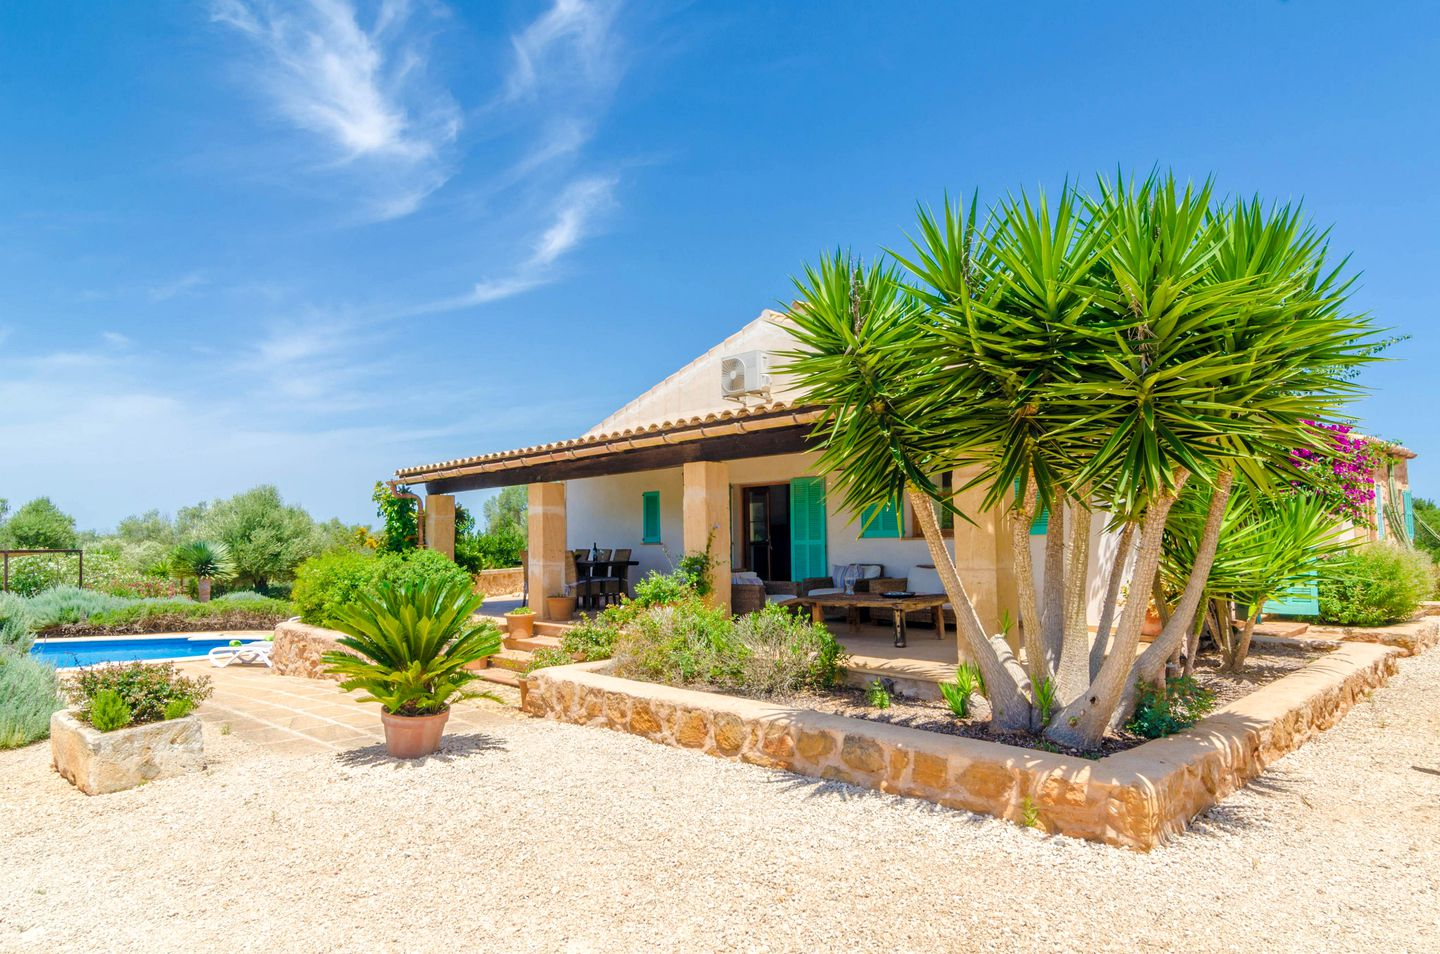 Enjoy a holiday in Mallorca at this villa rental!